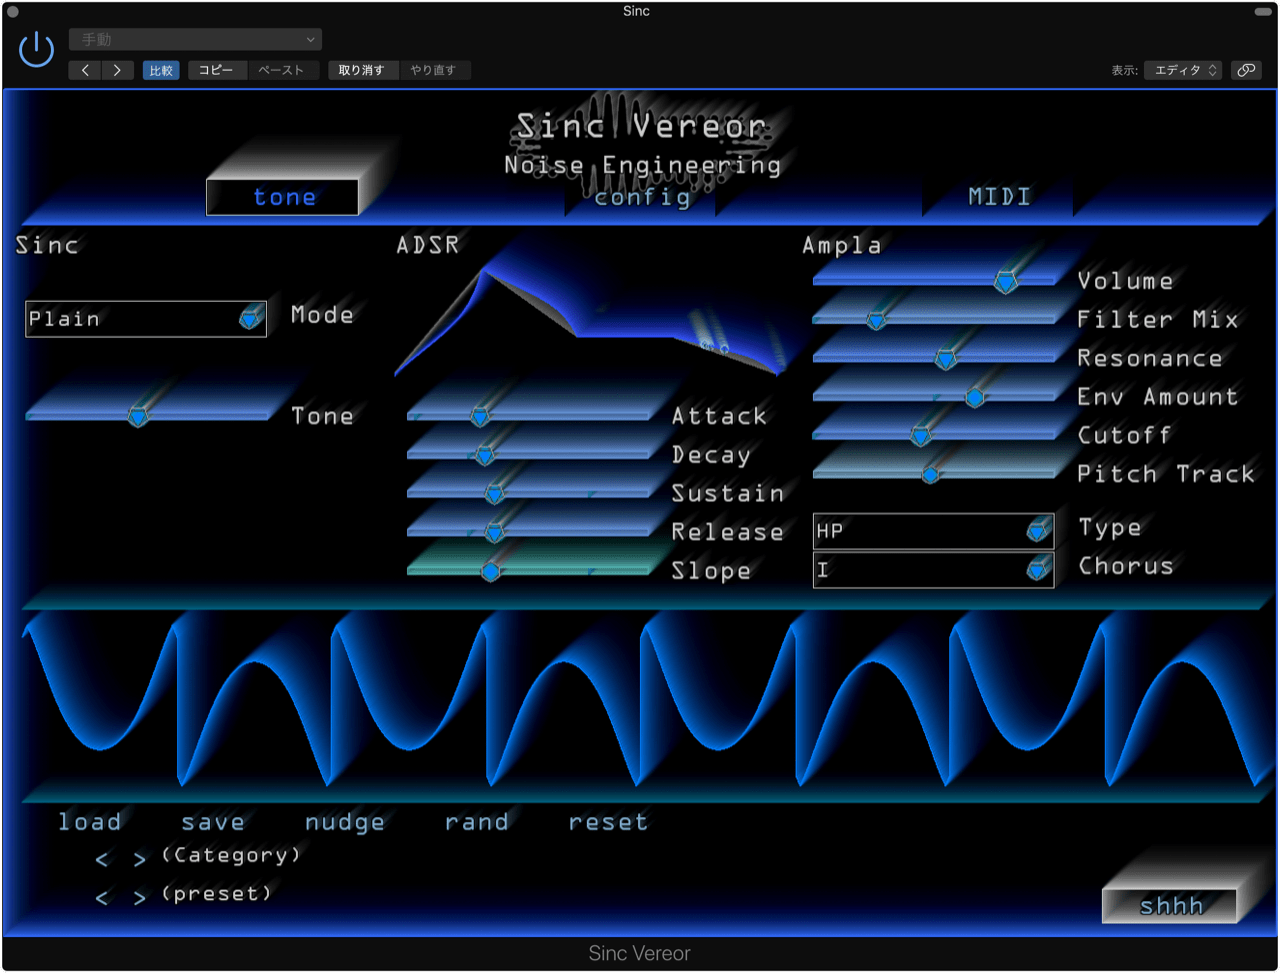 Software — Noise Engineering